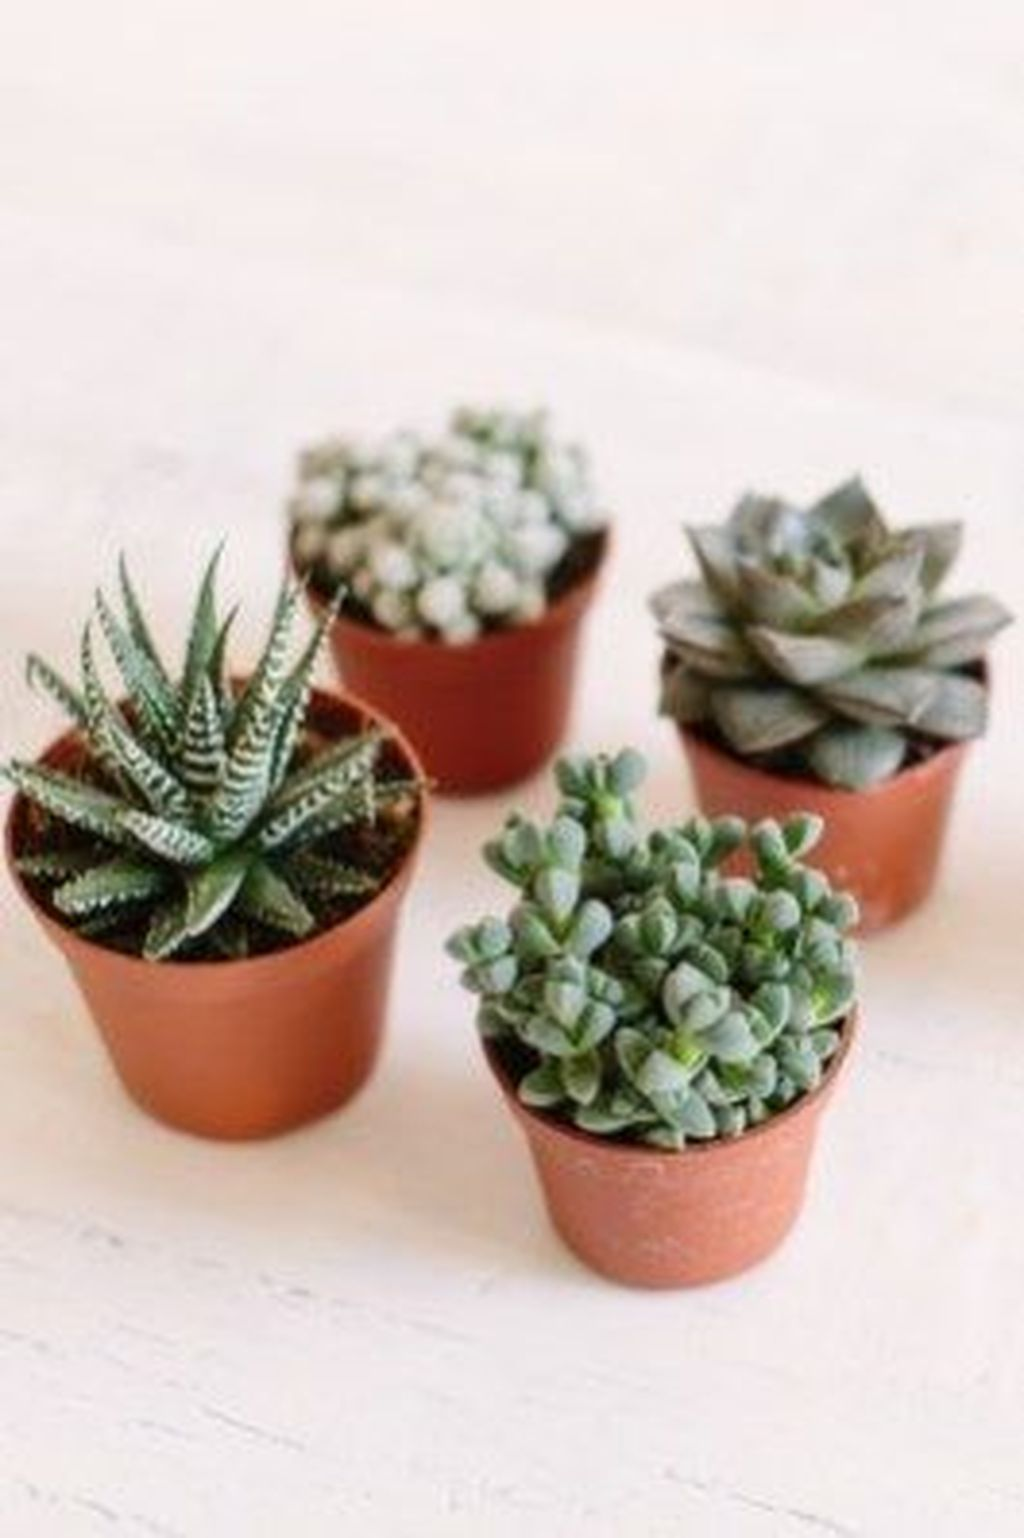 40 Magnificient Succulent Plants Ideas For Indoor And Outdoor In Apartment Planting Succulents Succulents Plants